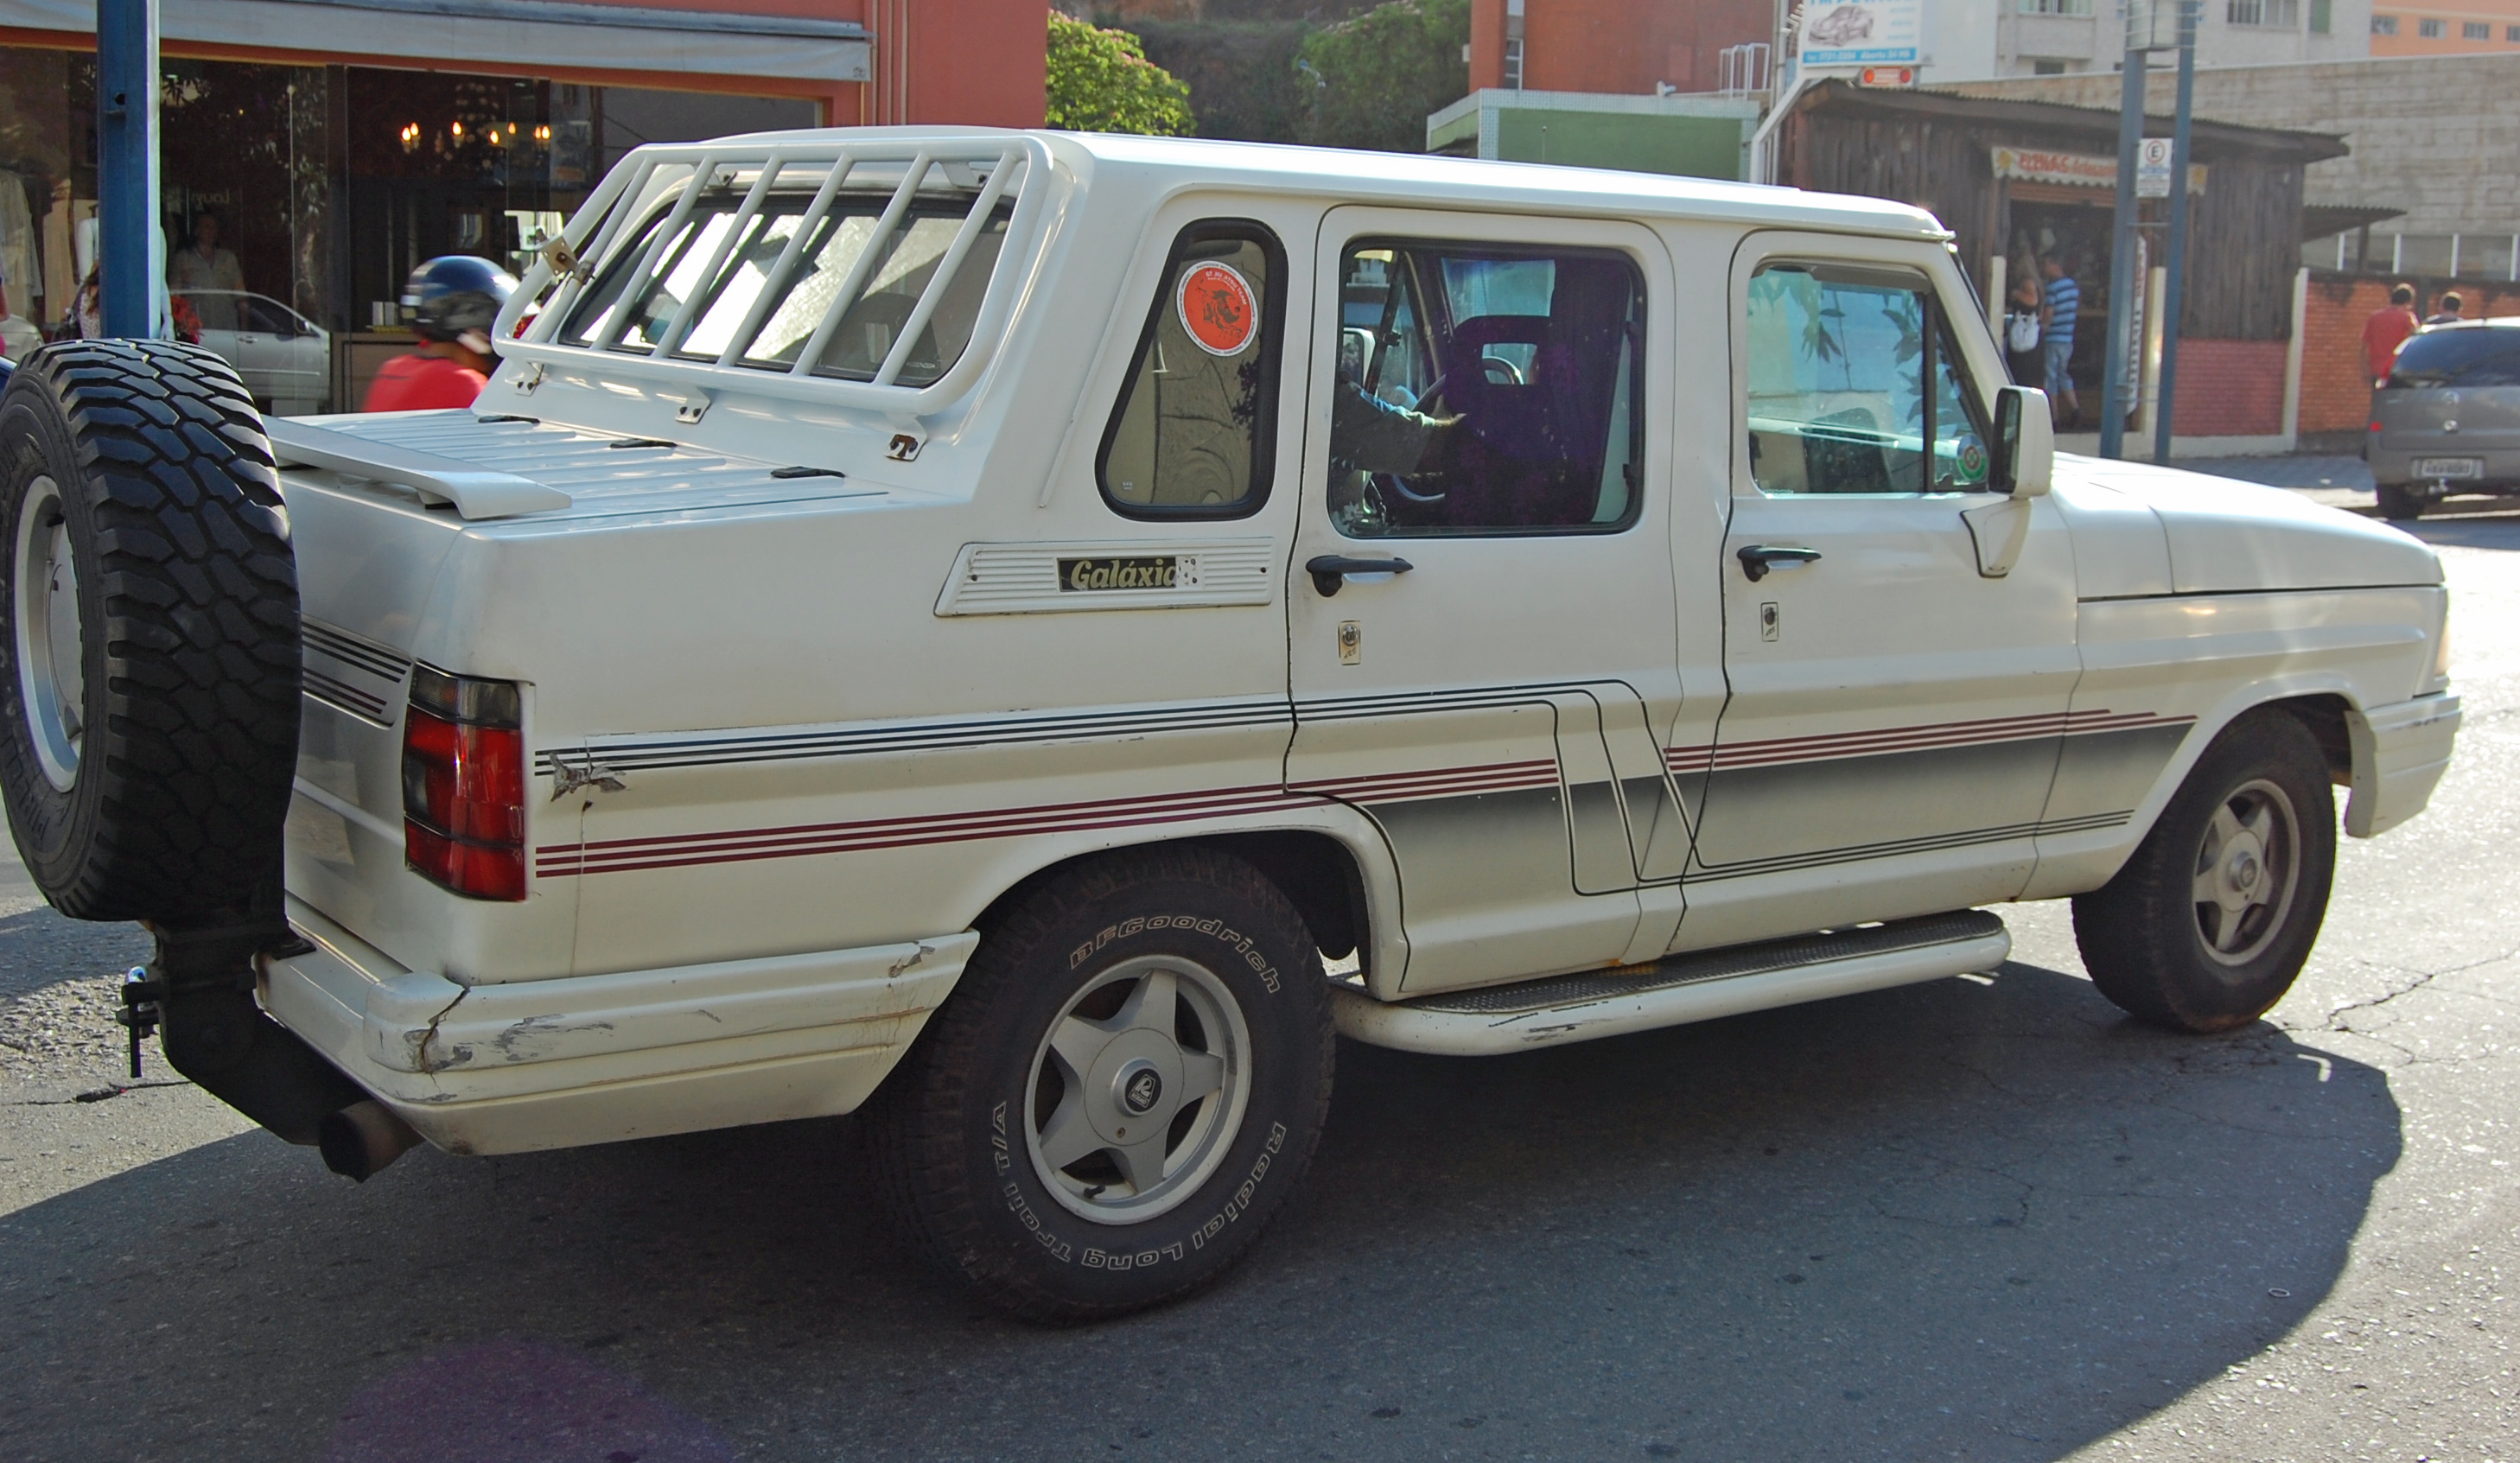 File:Ford F-1000 Galáxia.jpg - Wikimedia Commons